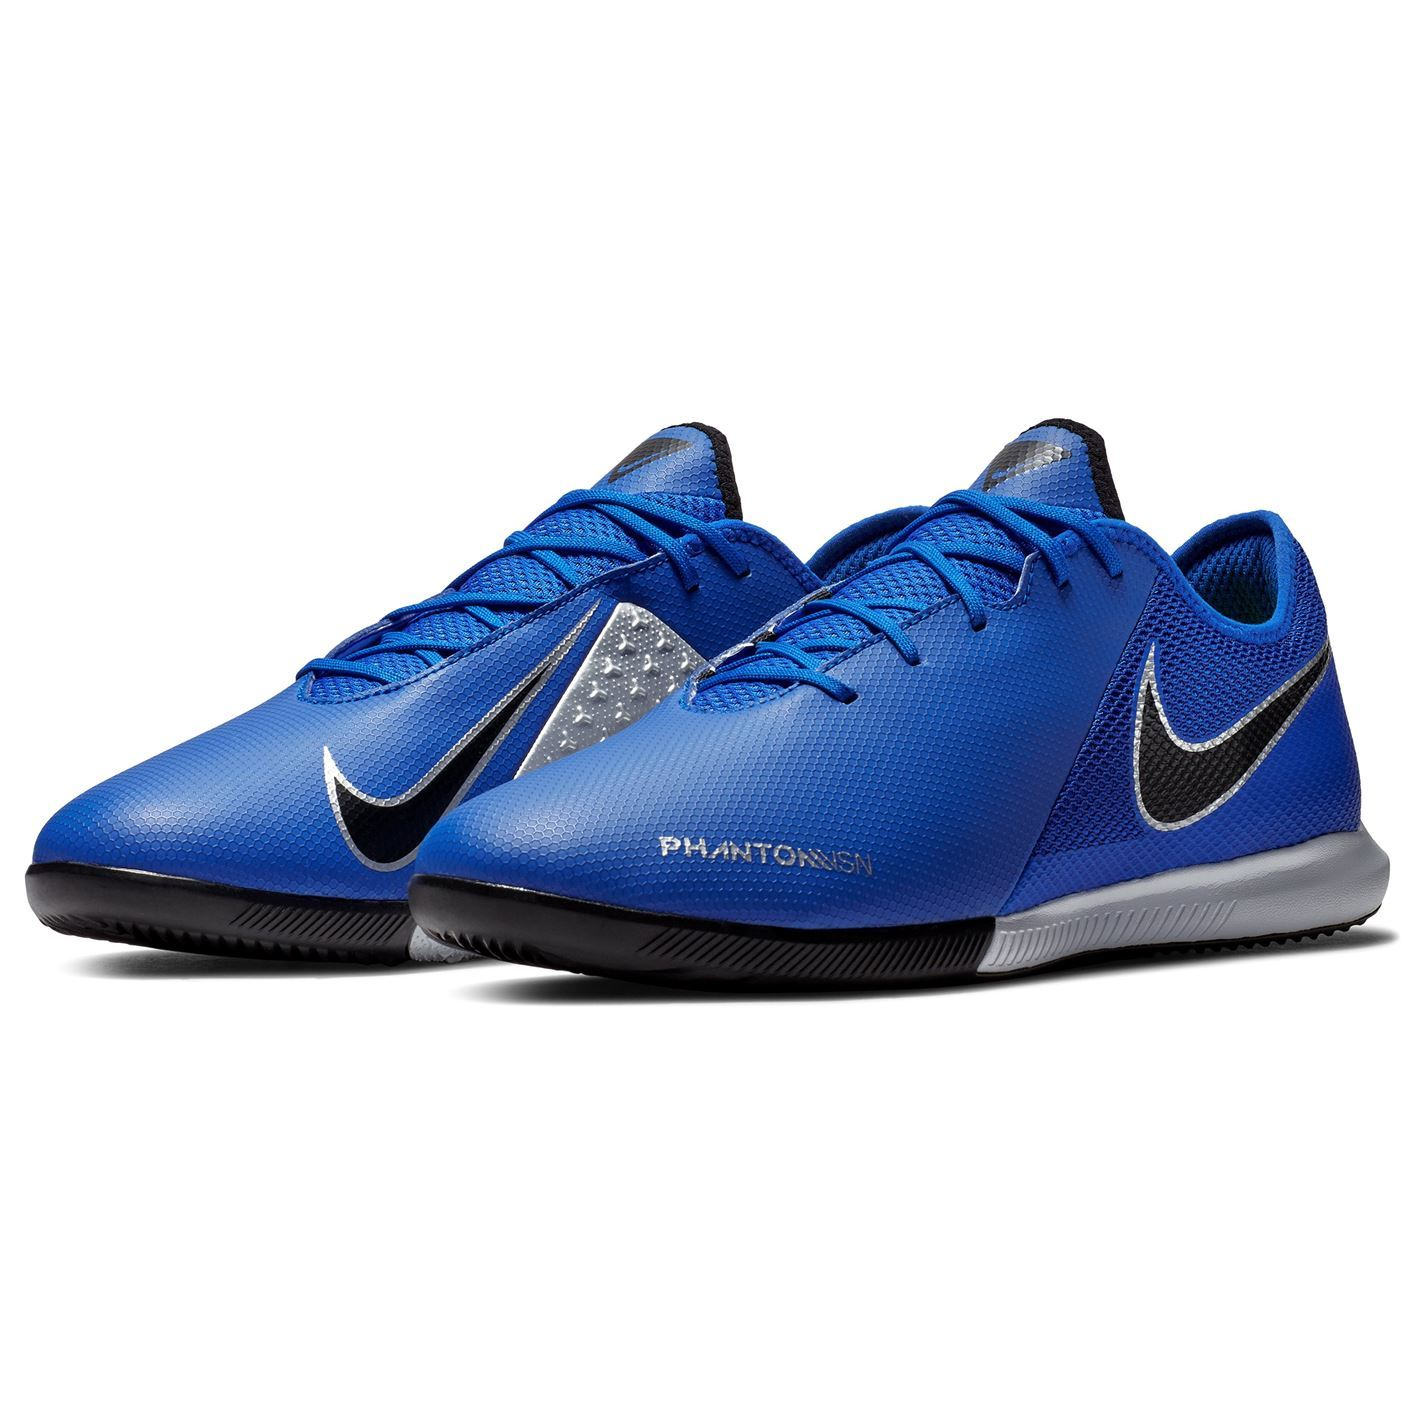 on sale 53273 ed2de Nike Phantom Vision Gato X Indoor Football Trainers Mens Soccer Futsal Shoes